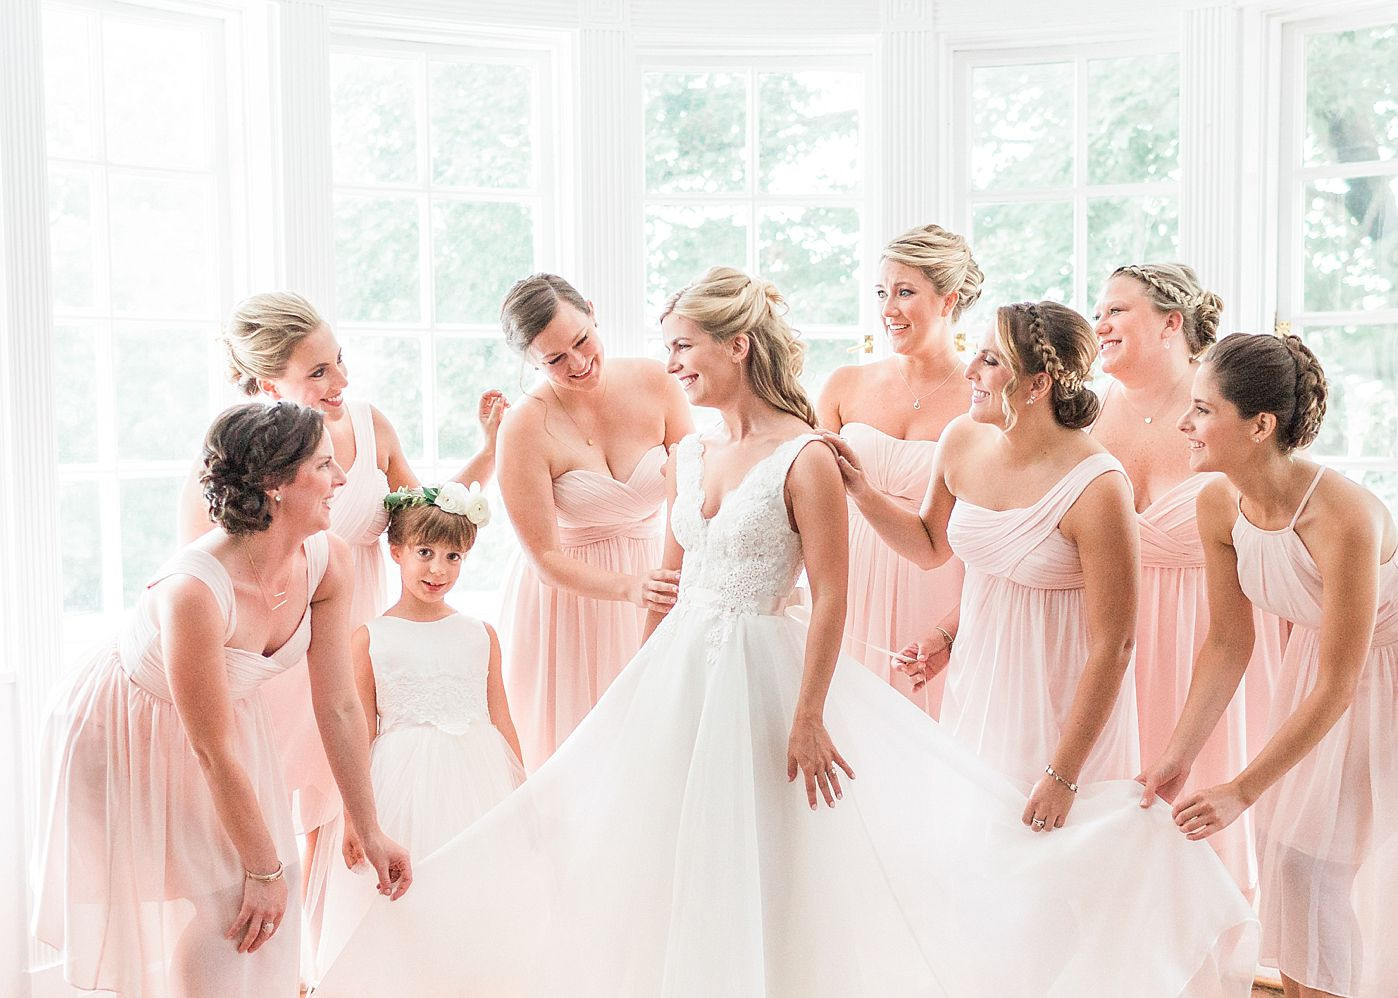 Wedding Colour Theme: Pale Pink - delicate and ethereal